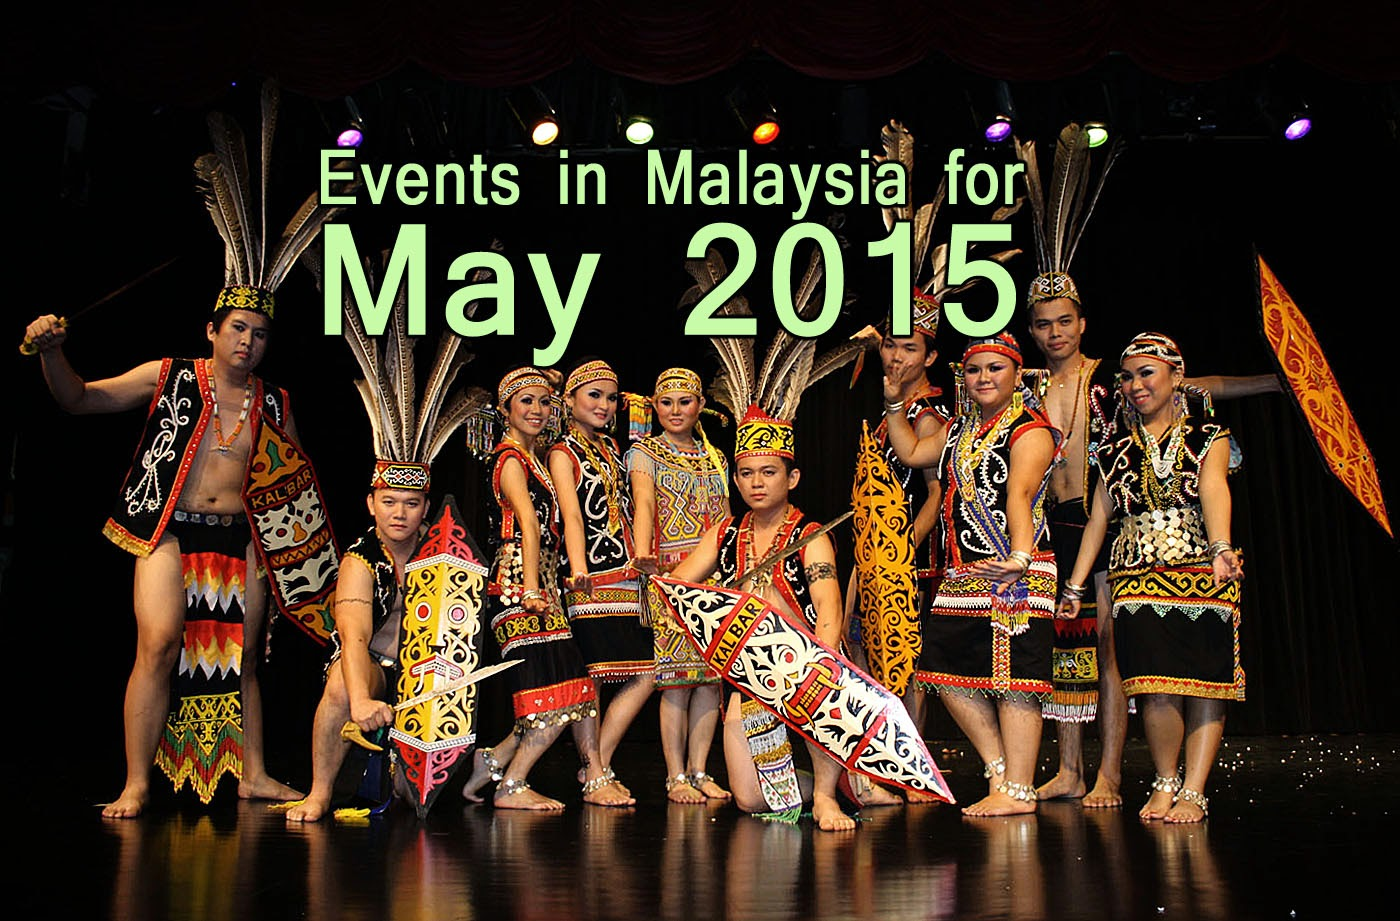 Malaysia Events Festivals in May 2015